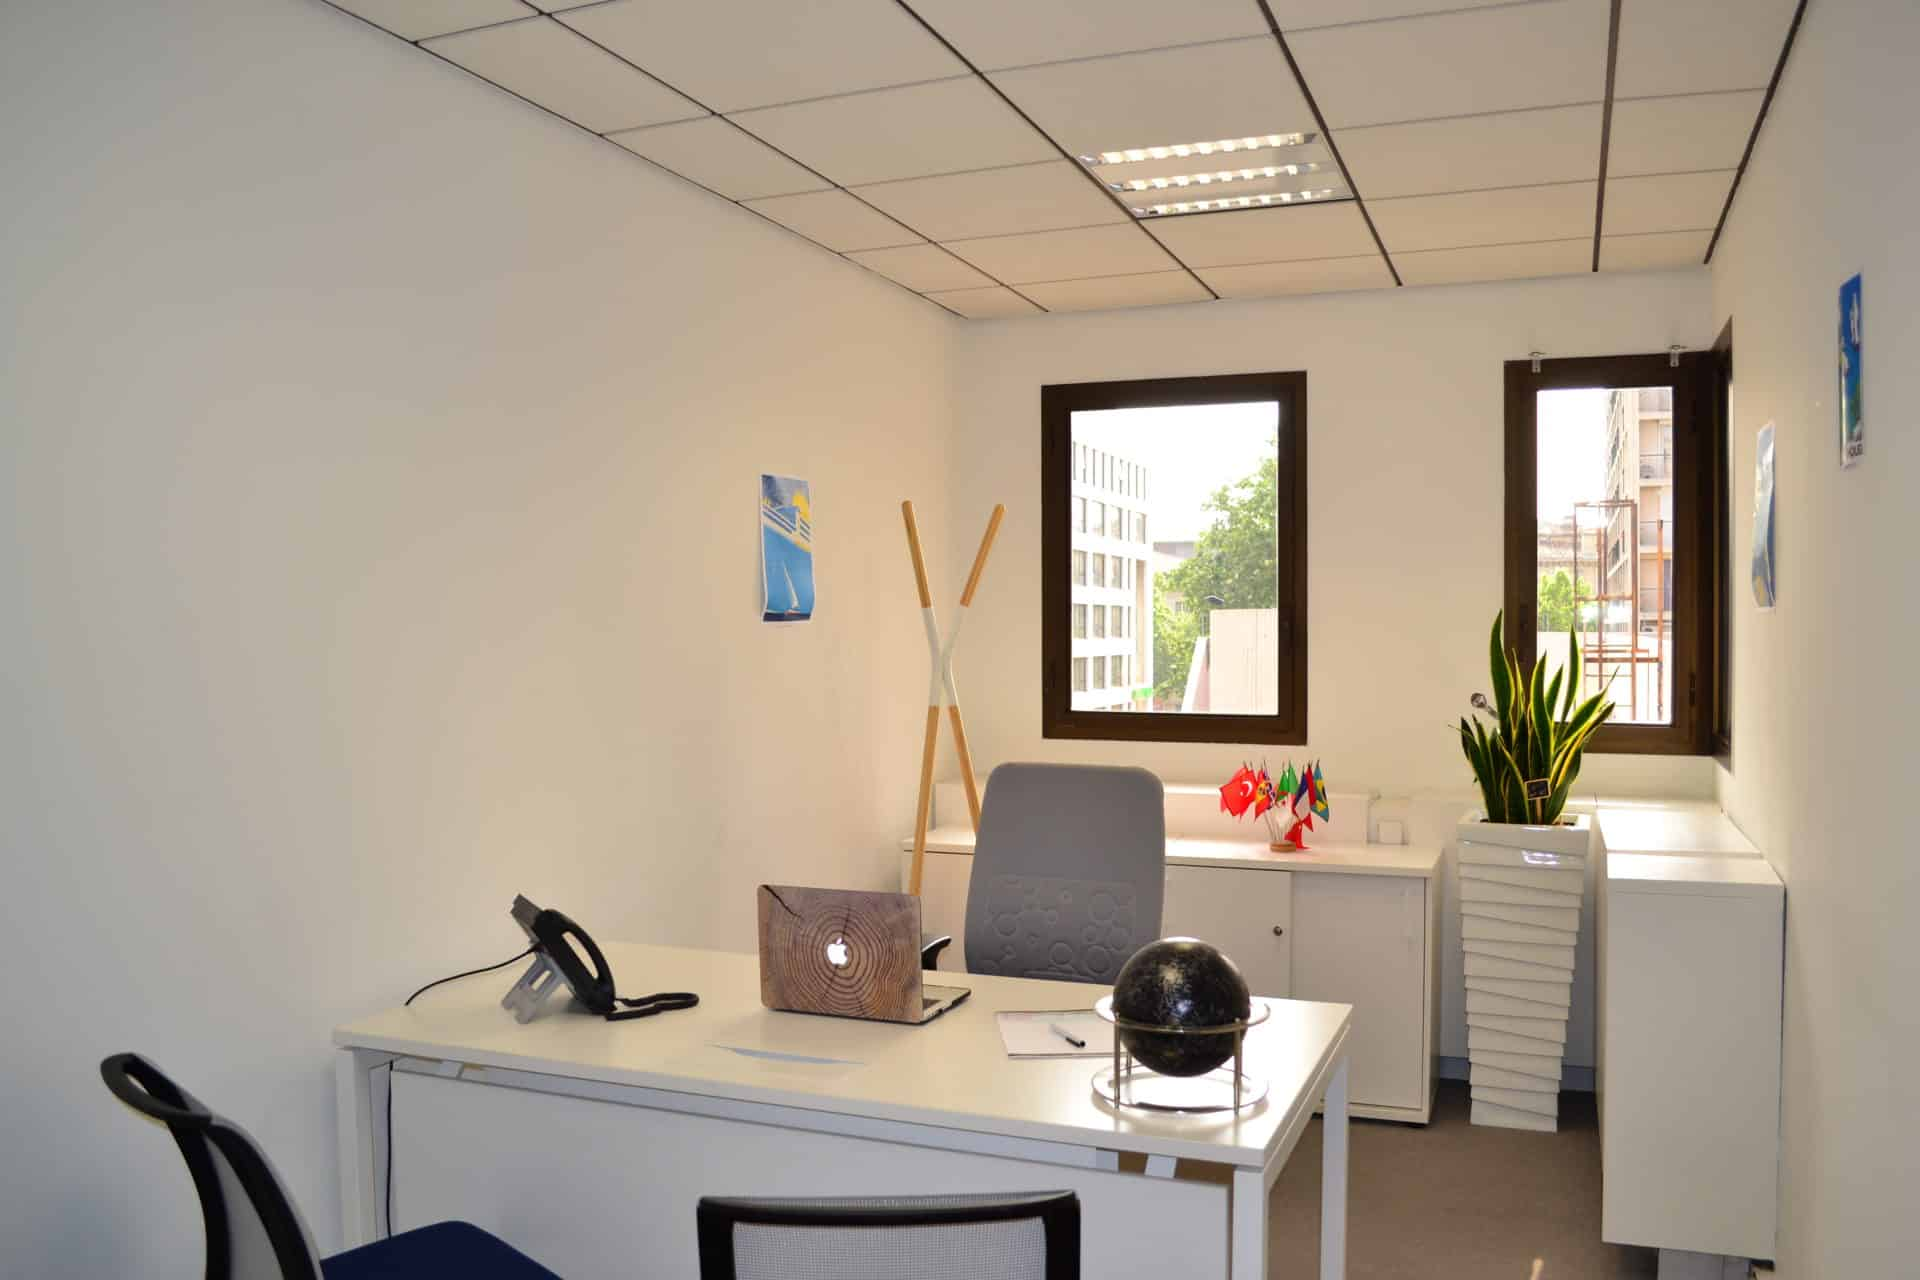 Location de bureau en plein cœur de Marseille - City Center